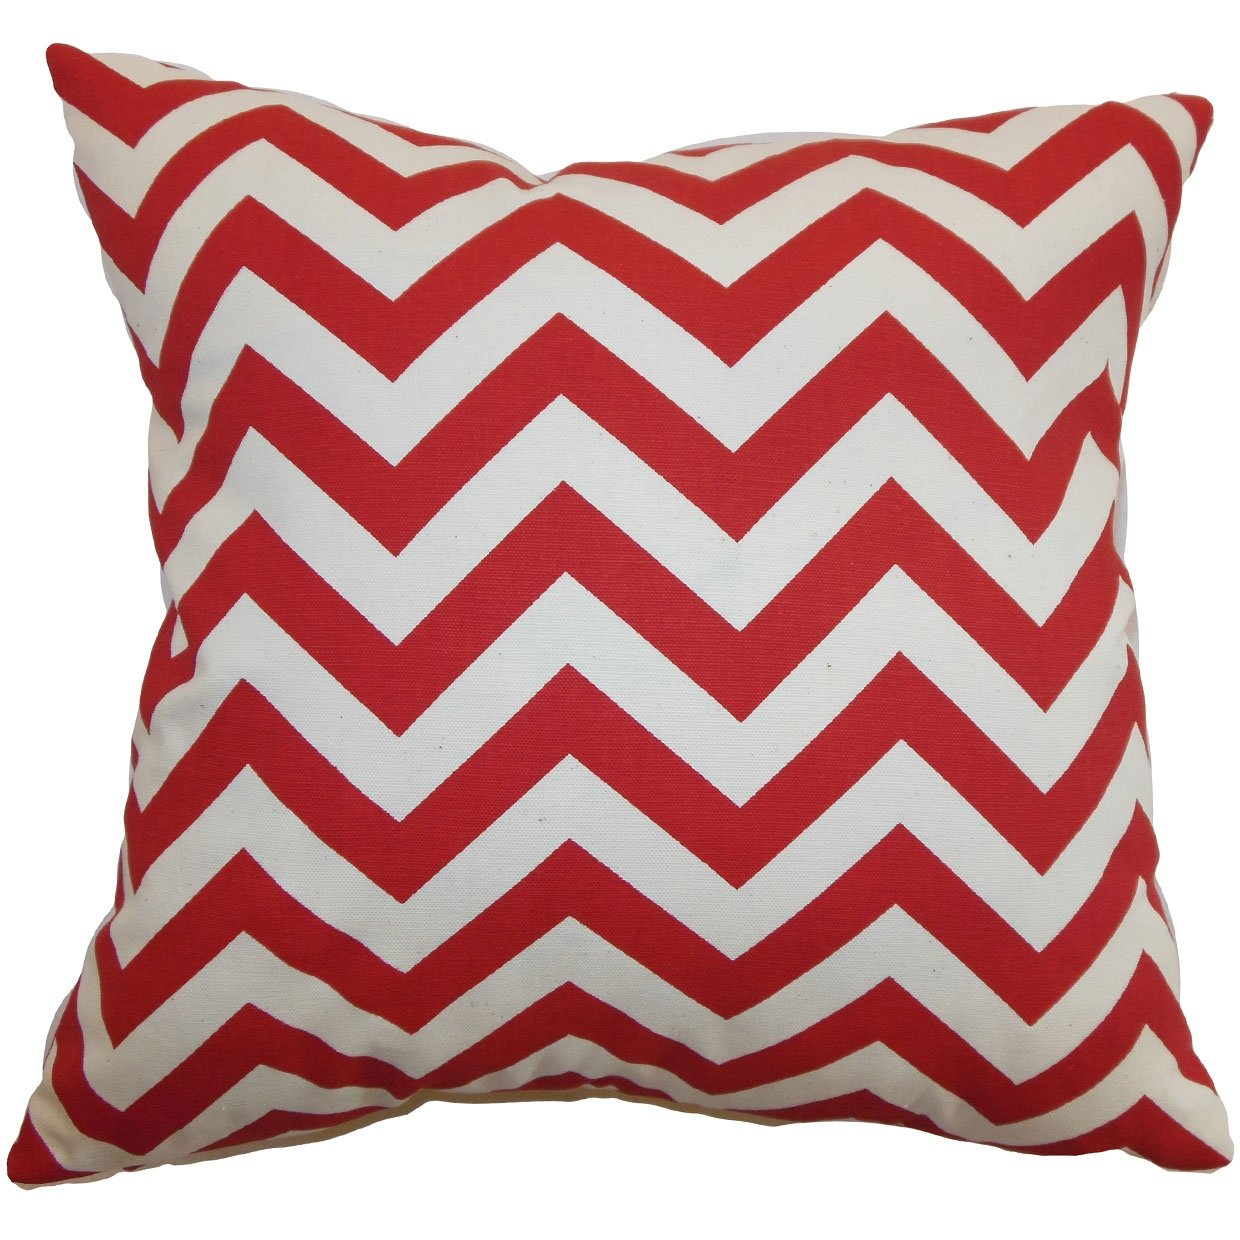 P18-PP-ZIGZAP-CORAL-WHITE-C100 Home The Pillow Collection Xayabury Zigzag Pillow 18 x 18 Coral White The Pillow Collection Inc.